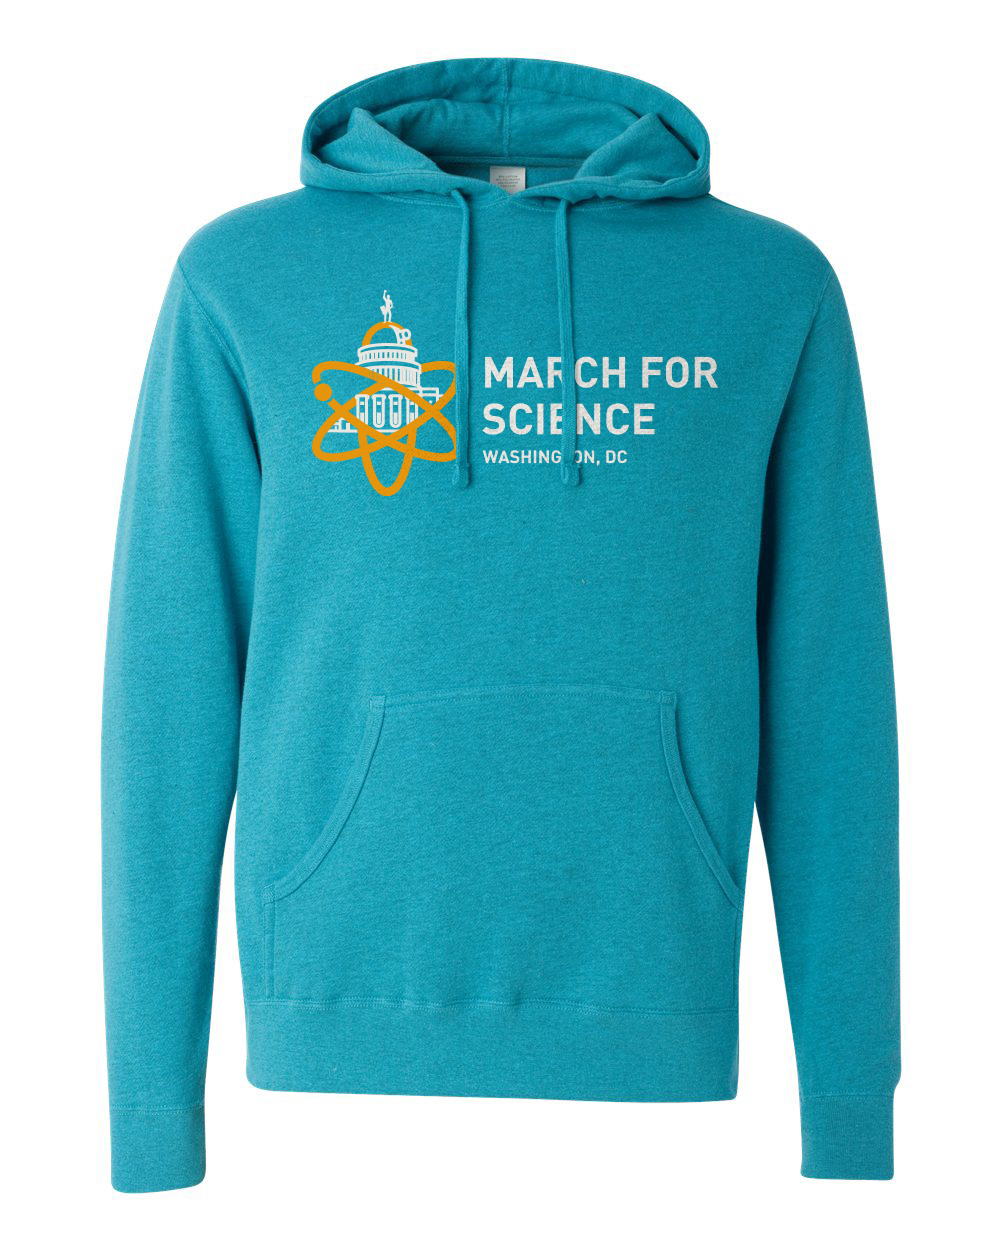 March For Science Hoodie Mockup